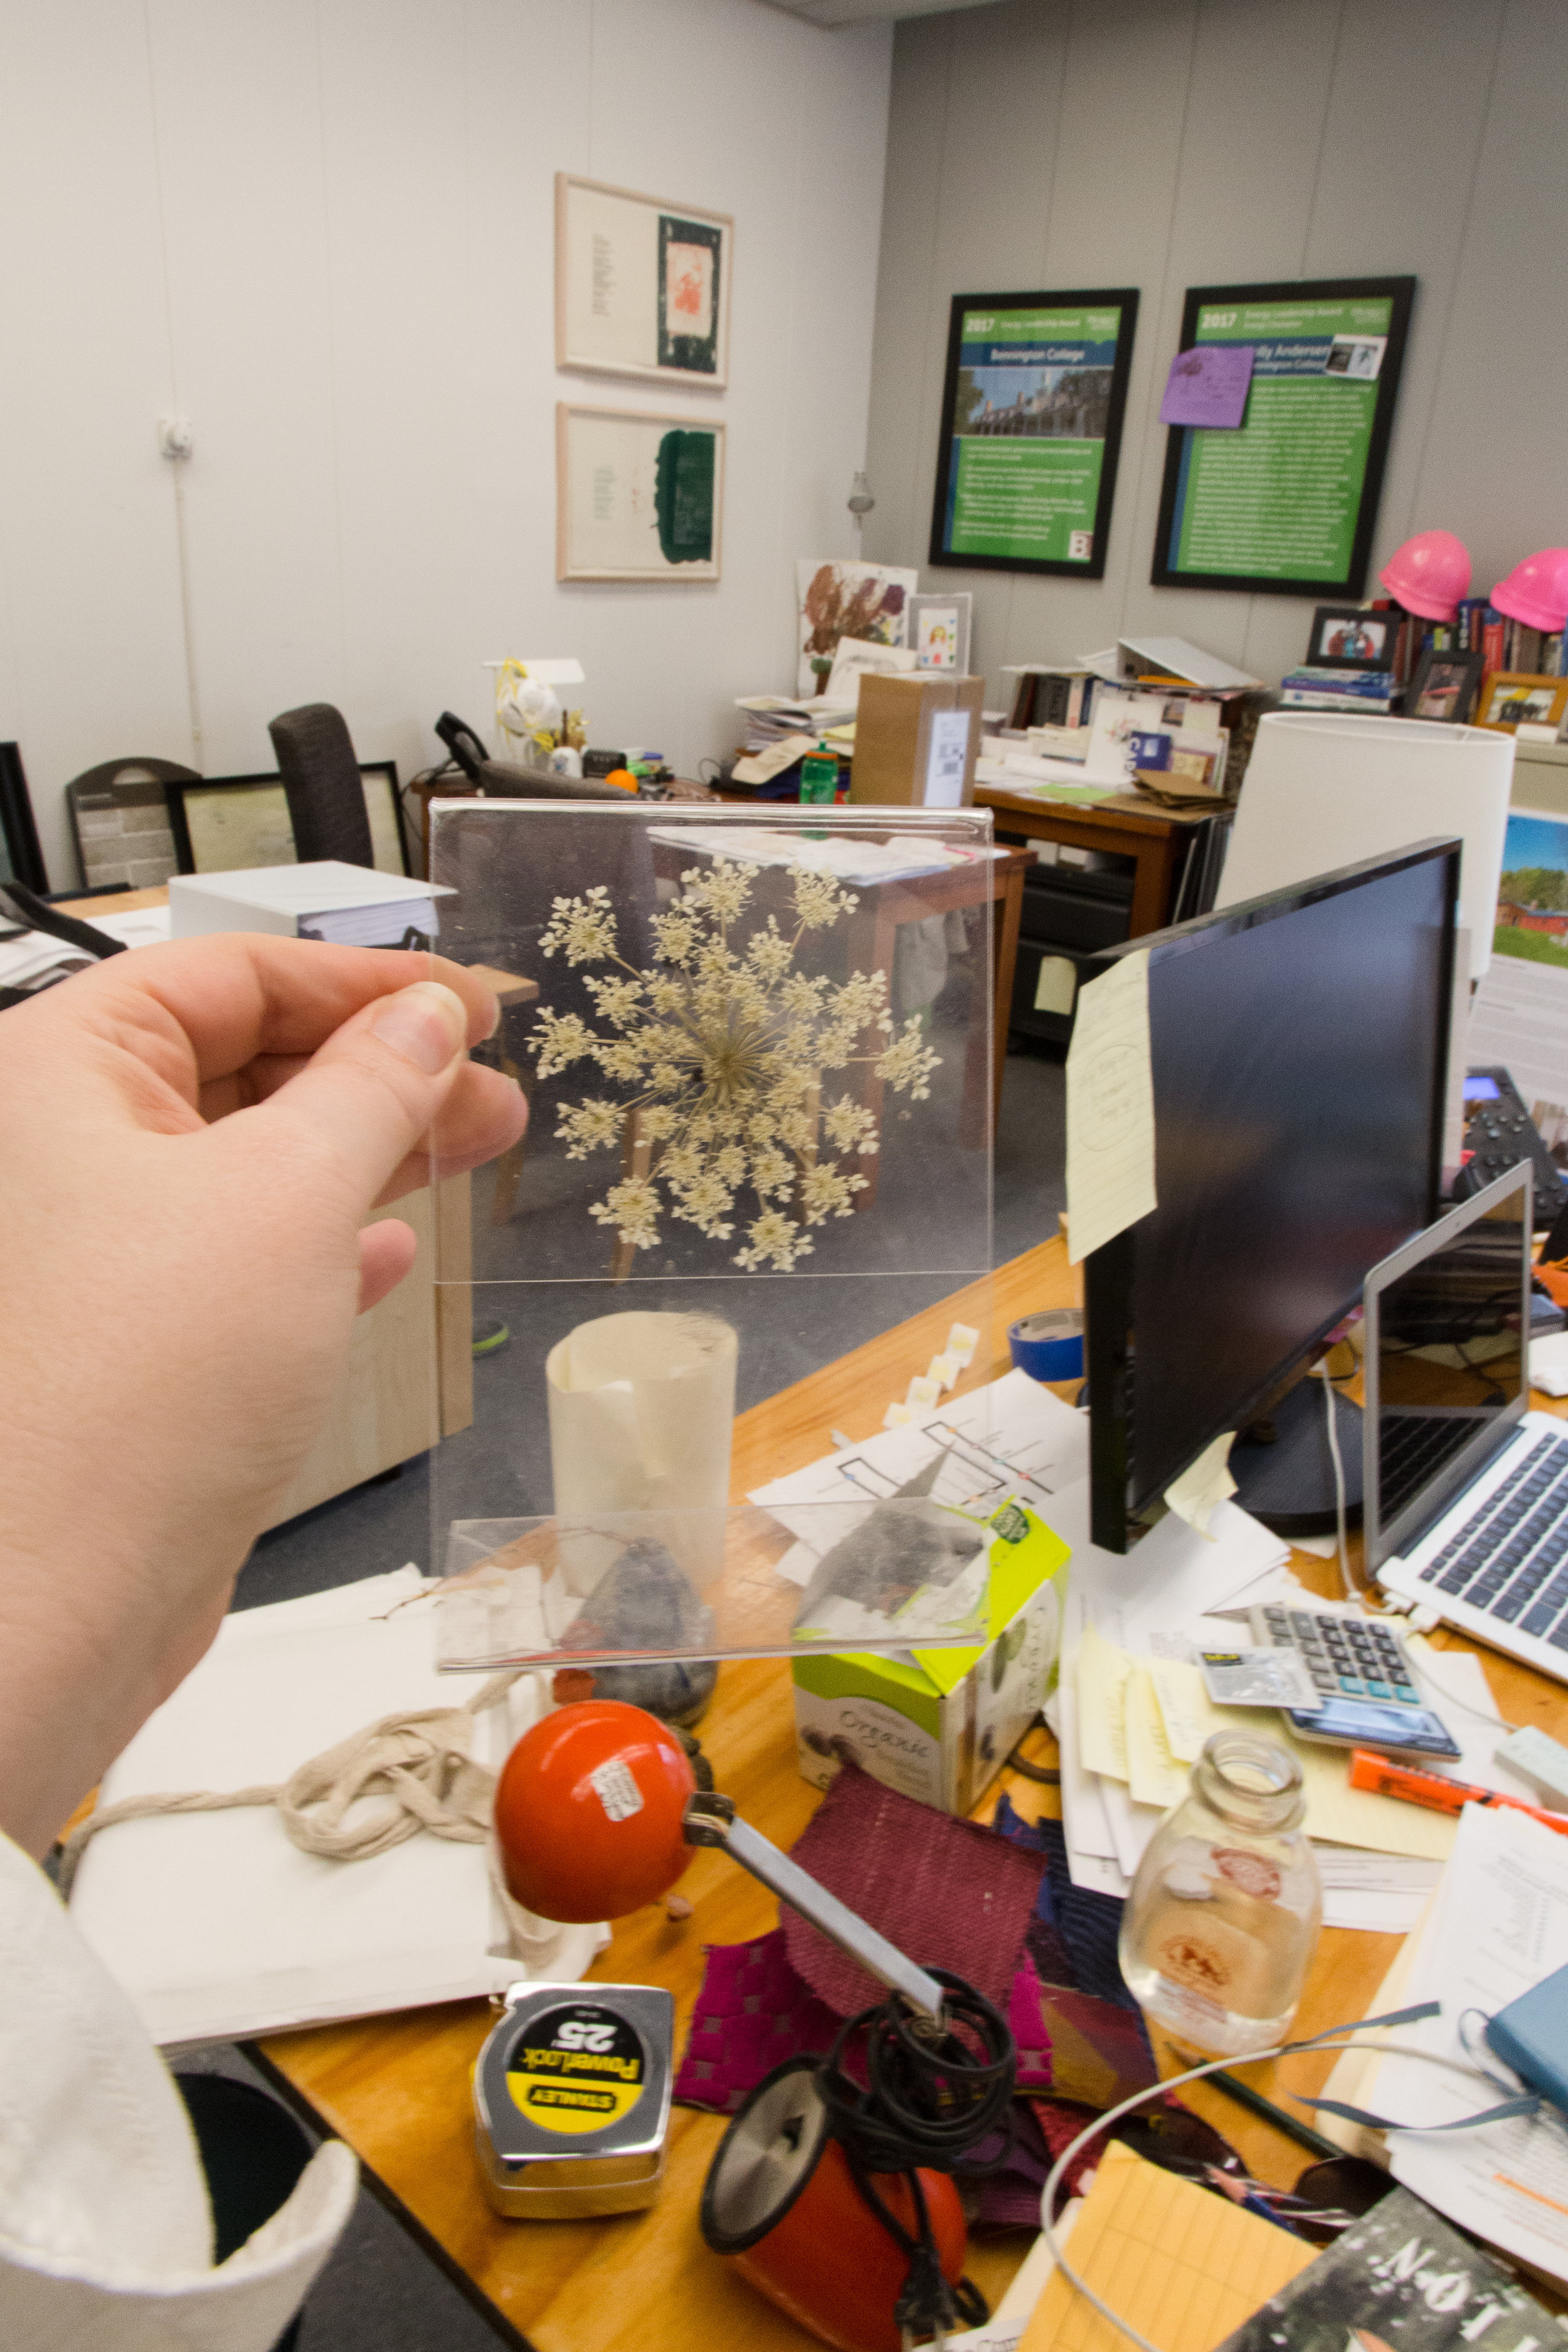 """Common Artifacts: The Art of Reuse - Erin McKenny is a collector, and everyone knows it. She collects walnuts and acorns, pressed Queen Anne's lace, old mailbox numbers, felt samples, and quaint little """"Made in Vermont"""" package stickers. Her office, shared with project manager Holly Andersen, is a cornucopia of textures and treasures sourced from across campus—Andersen, the big and rustic: steam pipes, paned windows, a box of hard hats. McKenny, the wild and small: a splintered wooden E, a """"ringer"""" box, campus posters. [the full story]"""